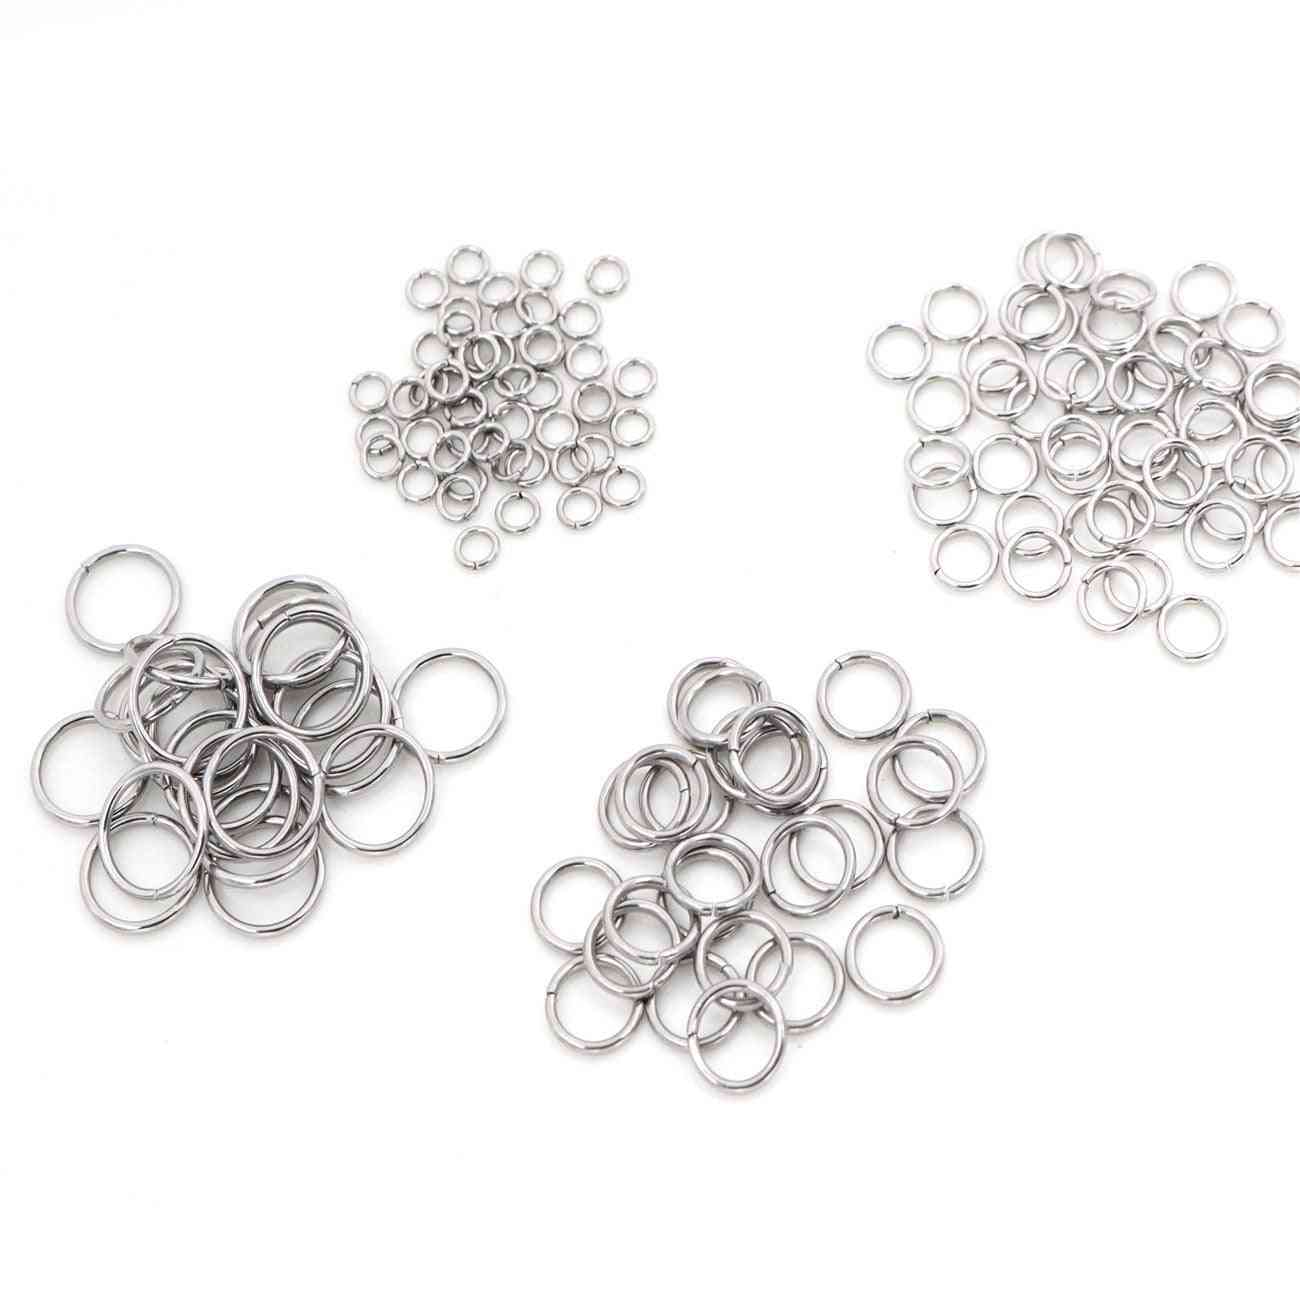 200pcs Stainless Steel Diy Jewelry Findings